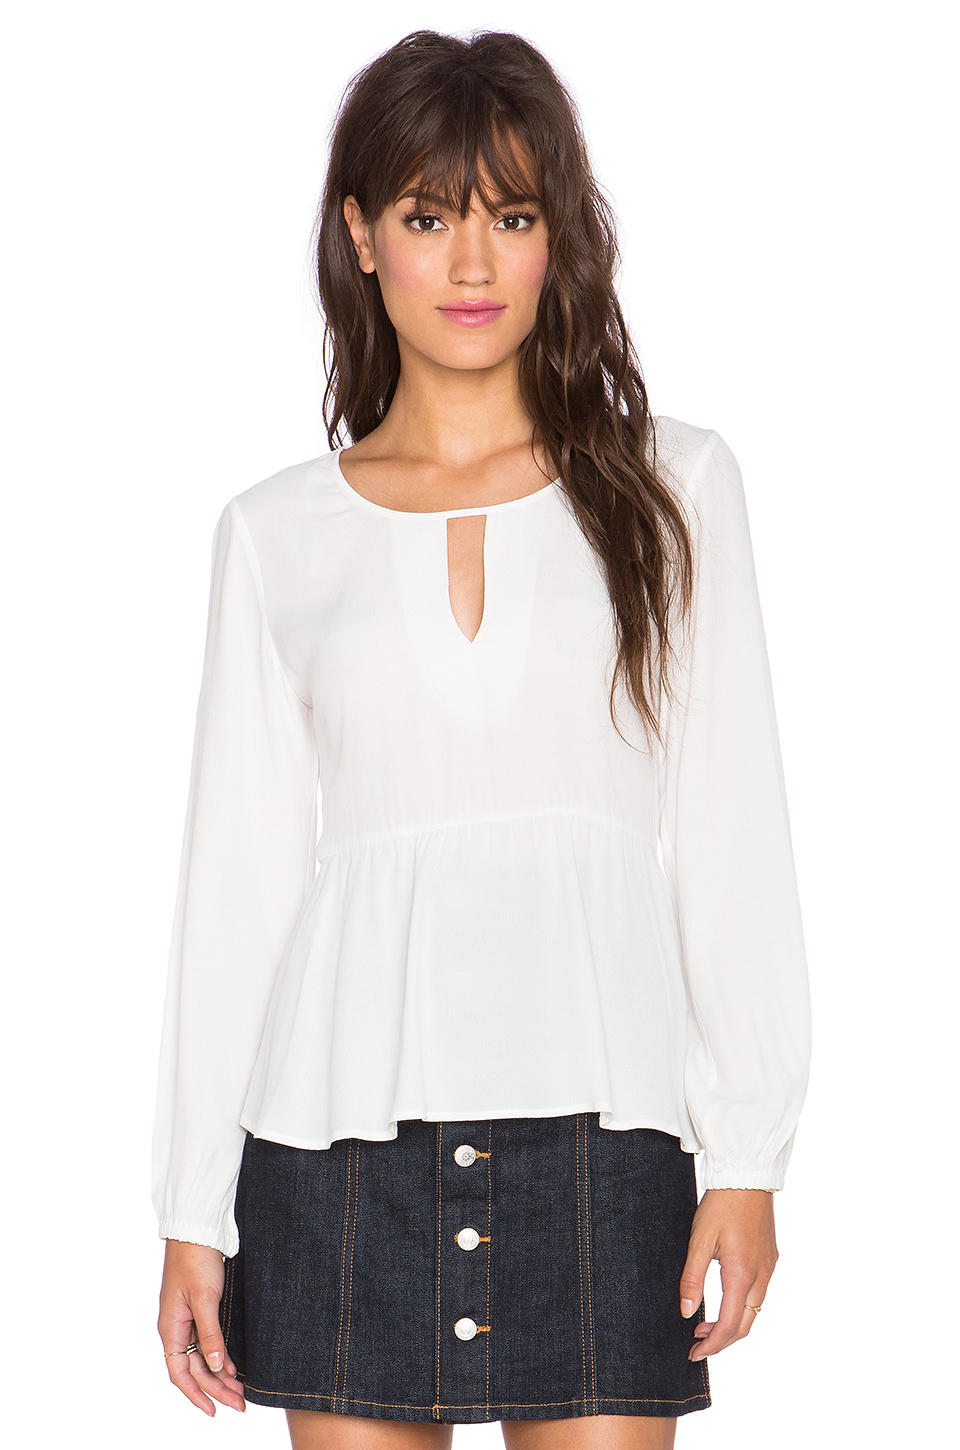 Minkpink Stand By Me Blouse in White